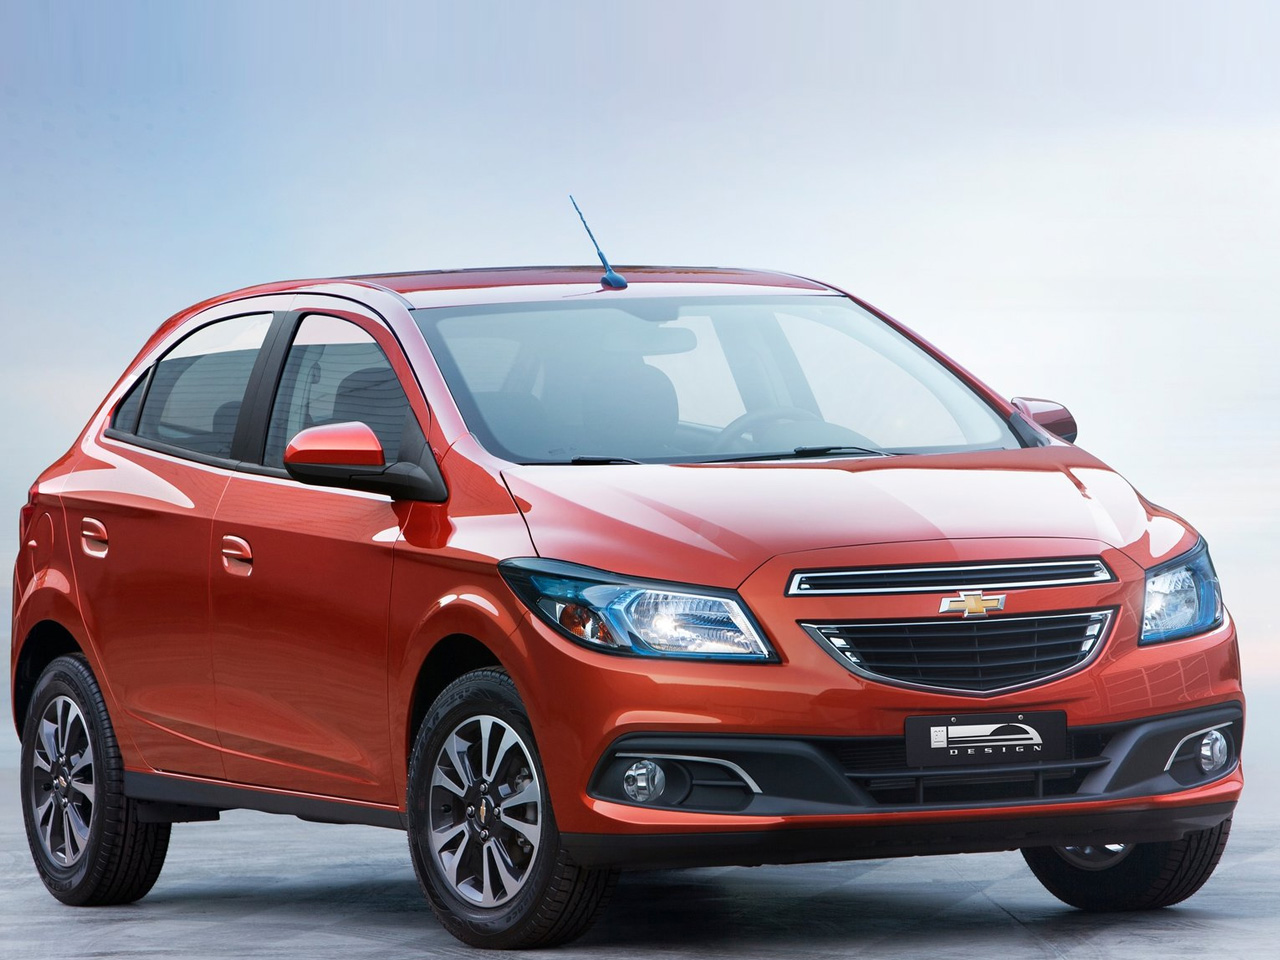 2013 Chevrolet Onix Owner Manual Pdf